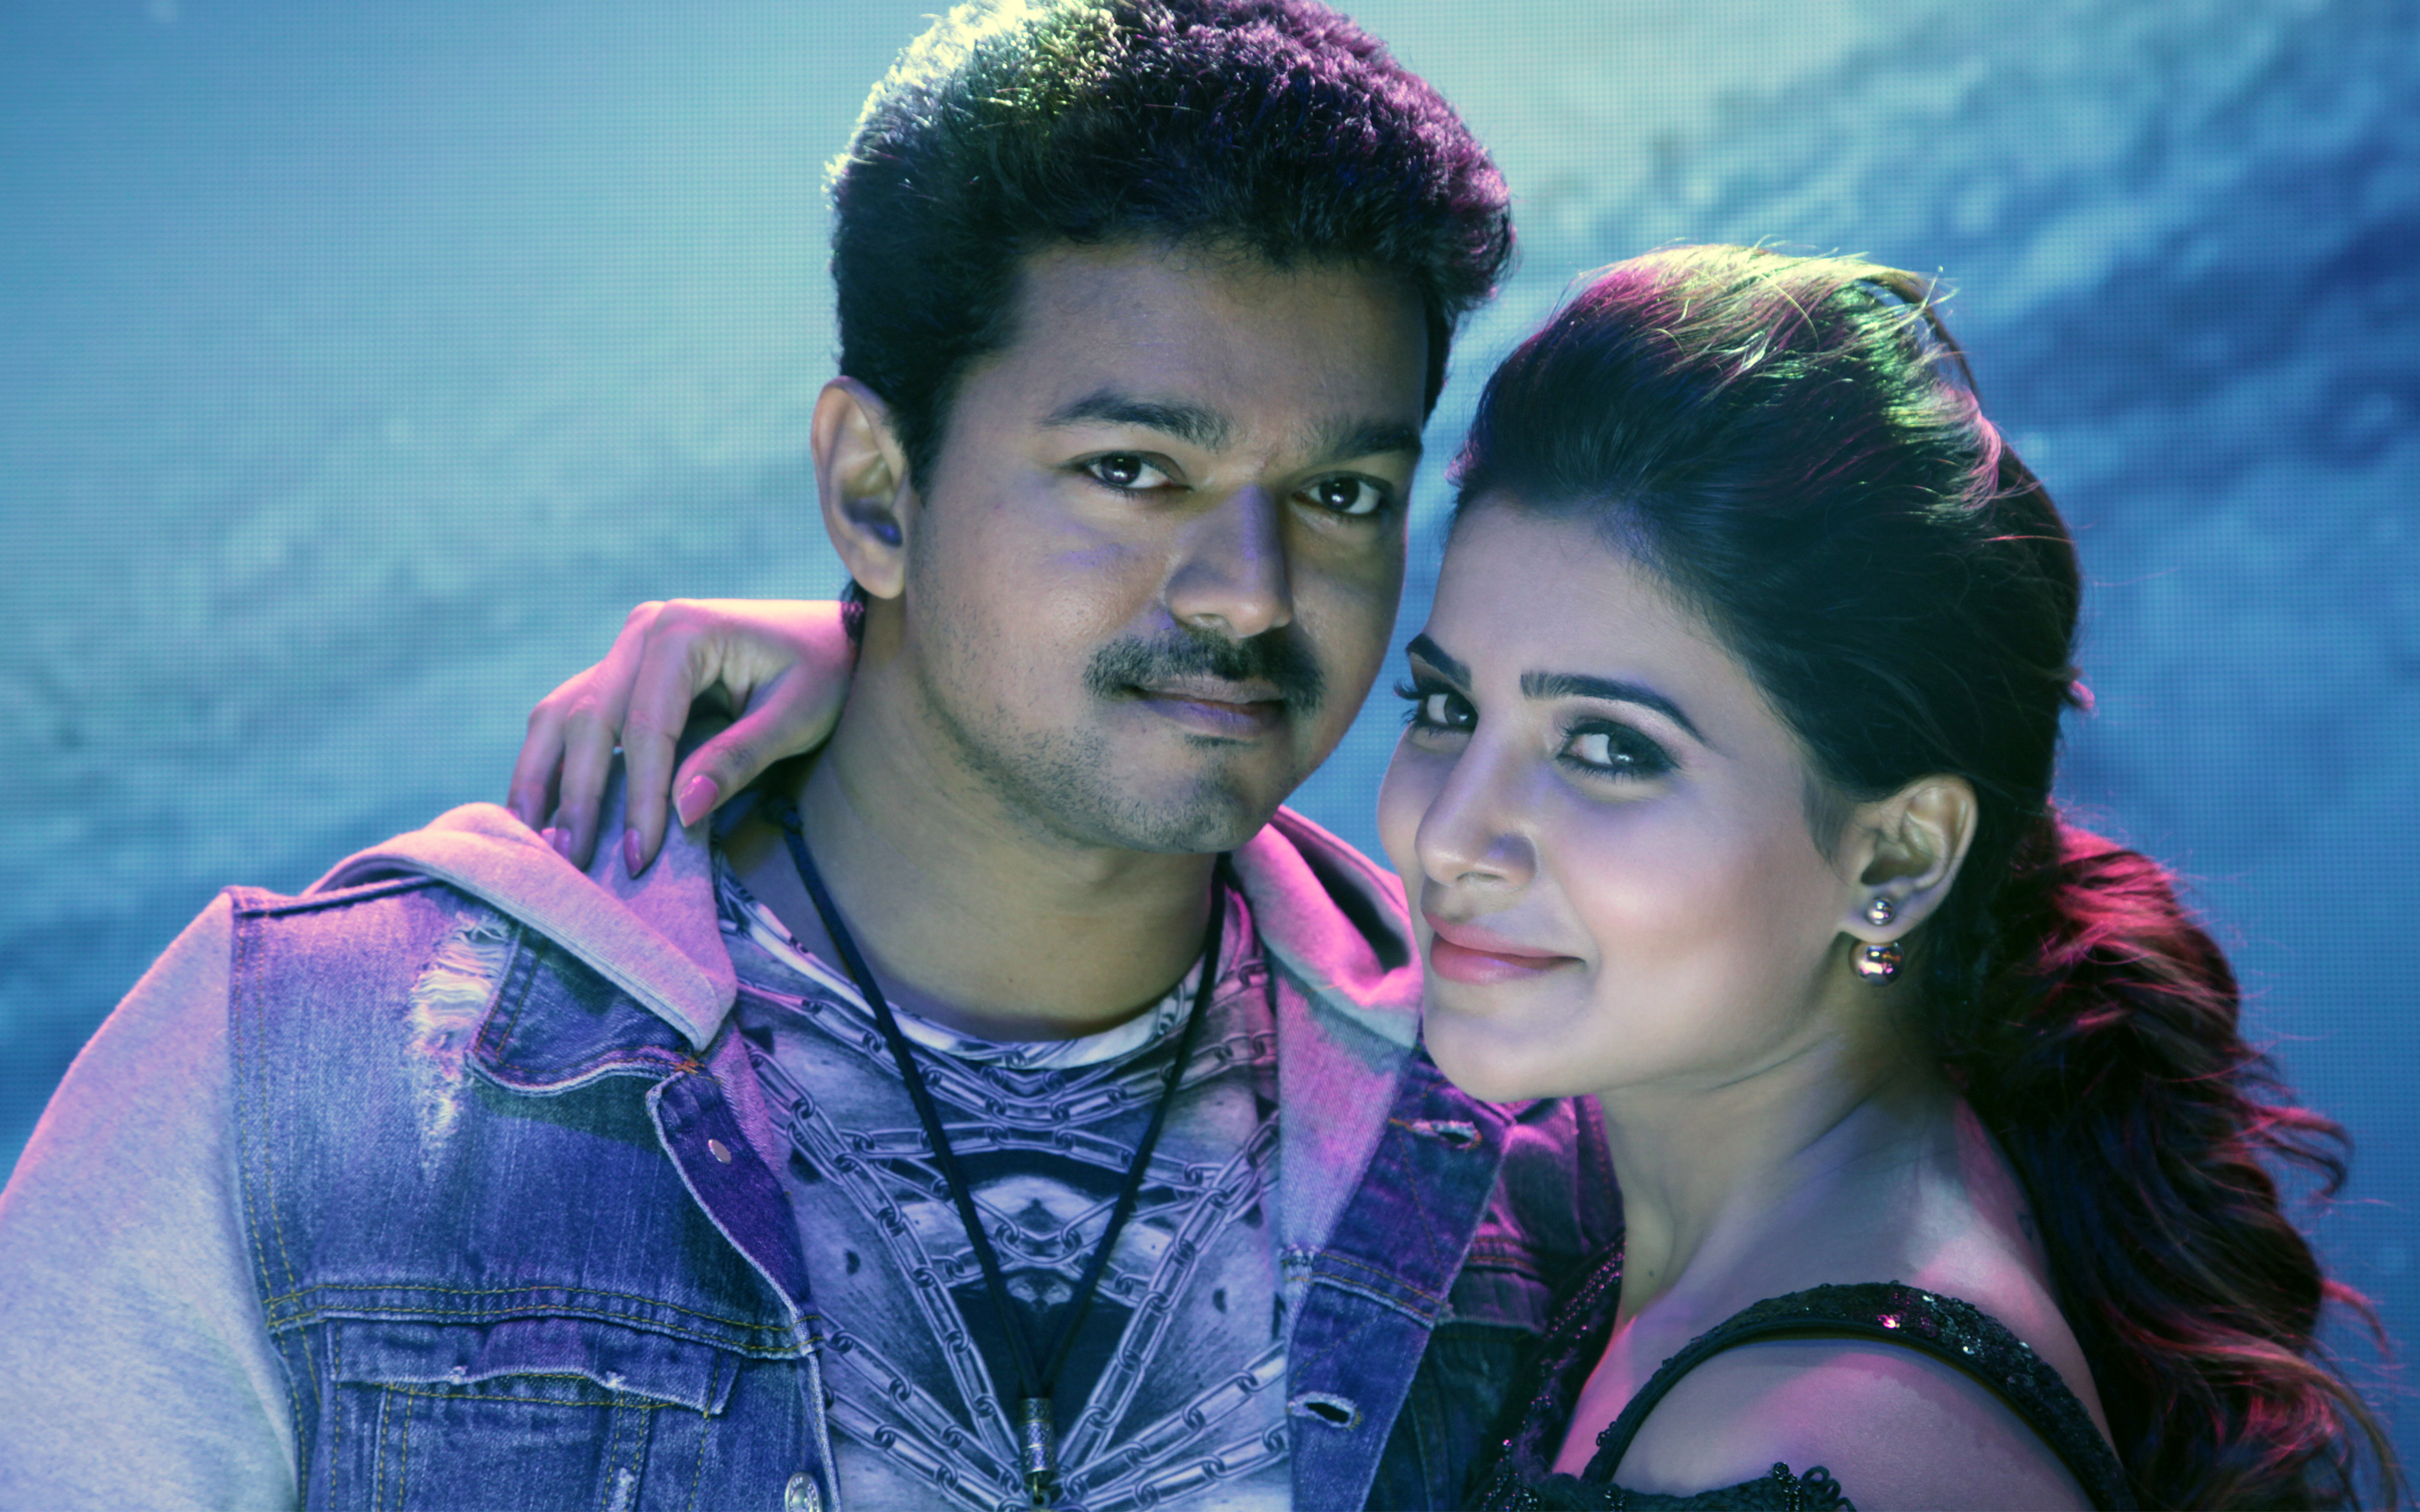 Vijay 4k Wallpapers For Your Desktop Or Mobile Screen Free And Easy To Download Latest wallpapers, hd images, hd backgrounds. vijay 4k wallpapers for your desktop or